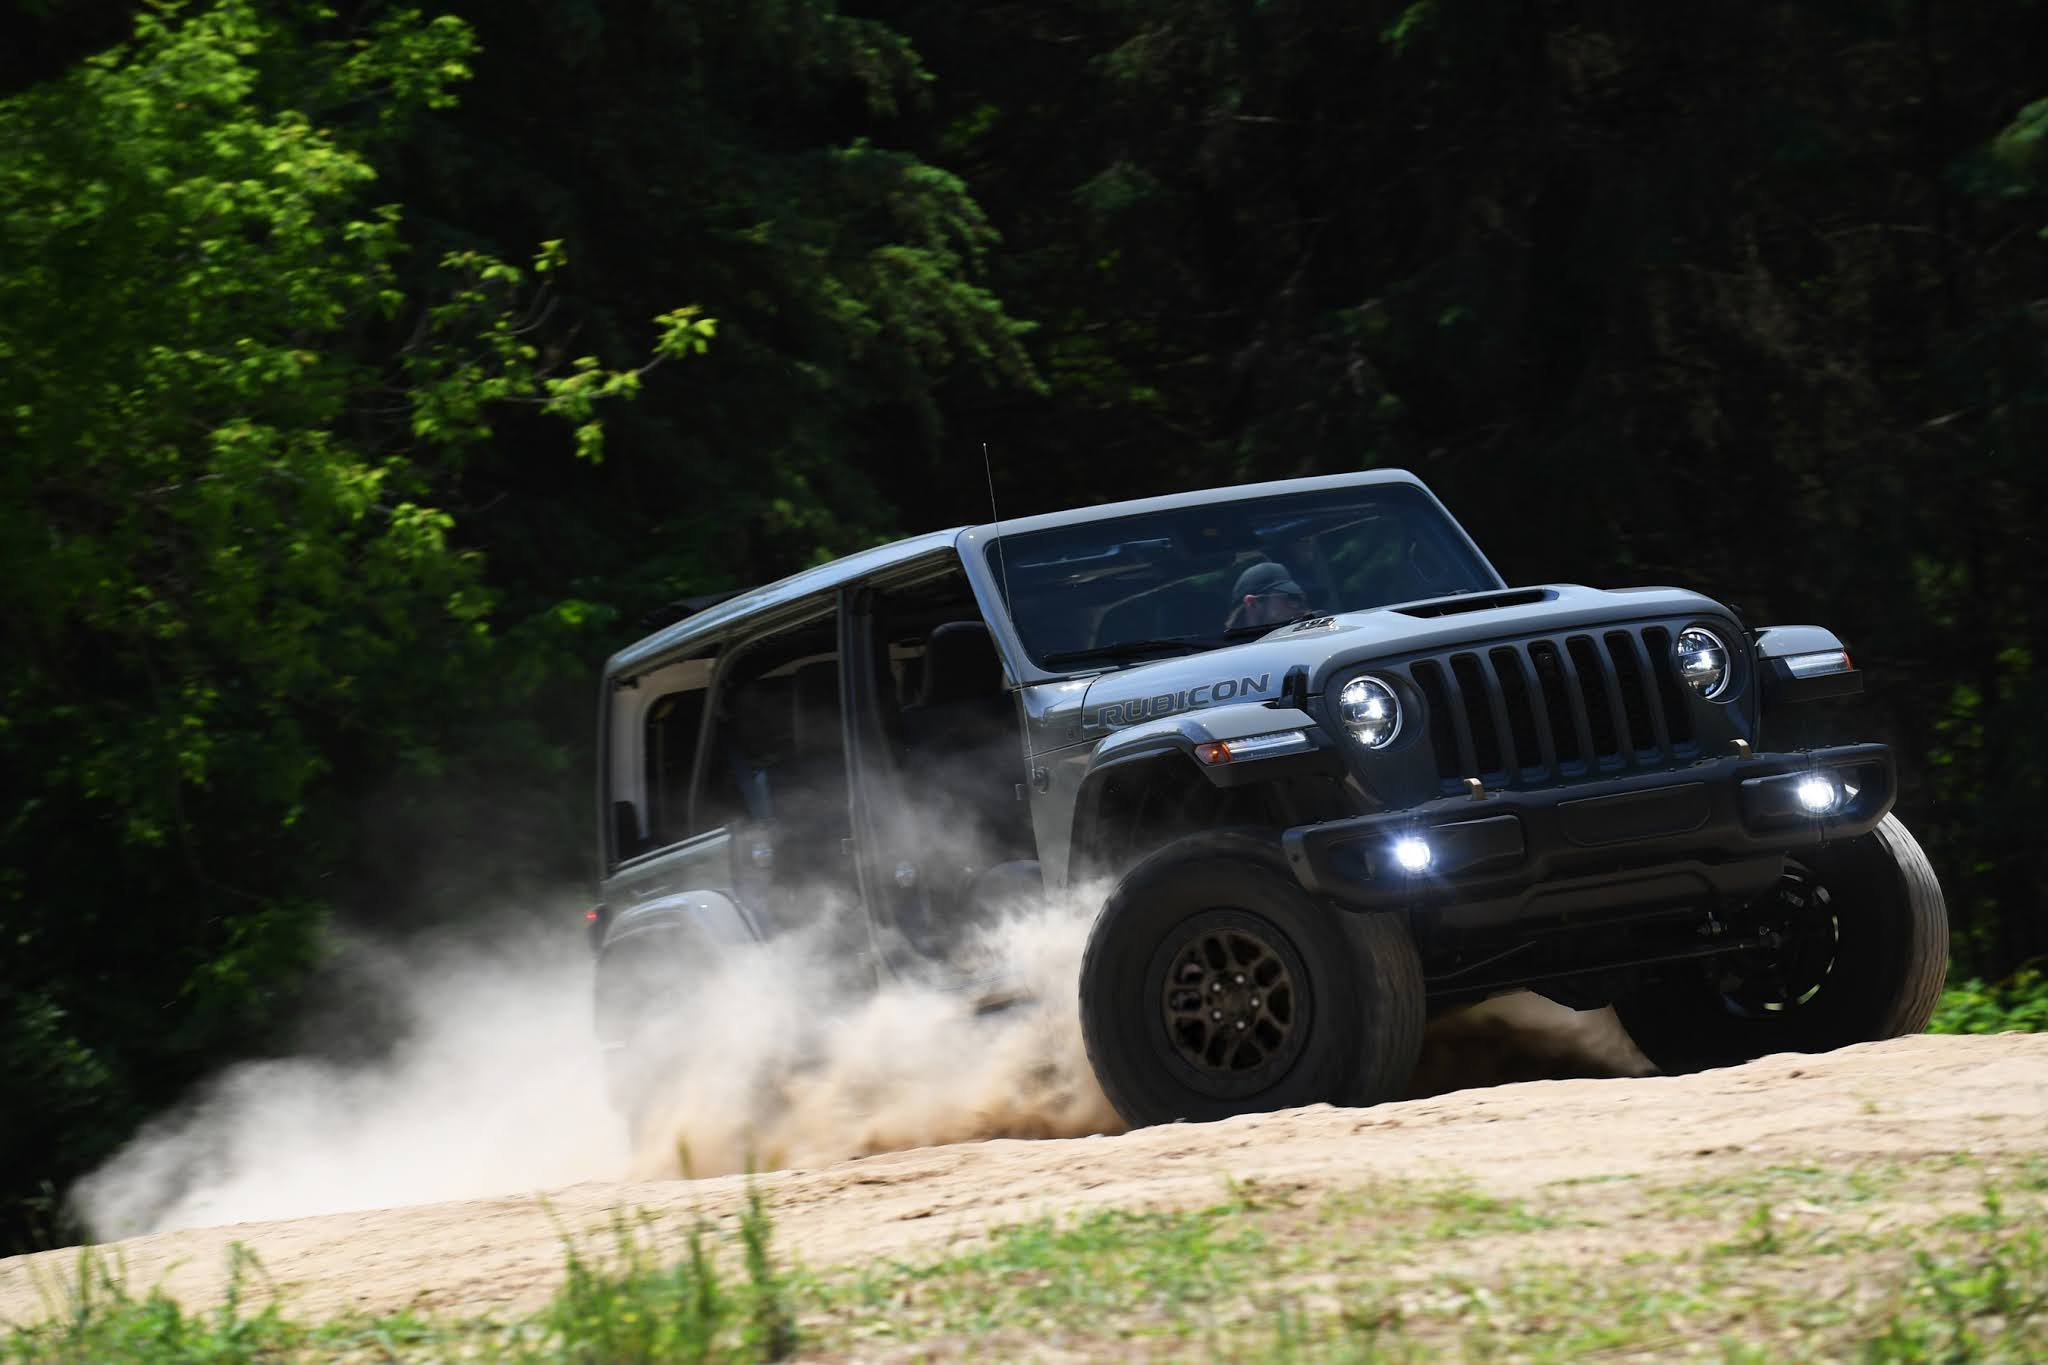 New Jeep Wrangler Xtreme Recon Package Takes 4x4 Capability to New Levels